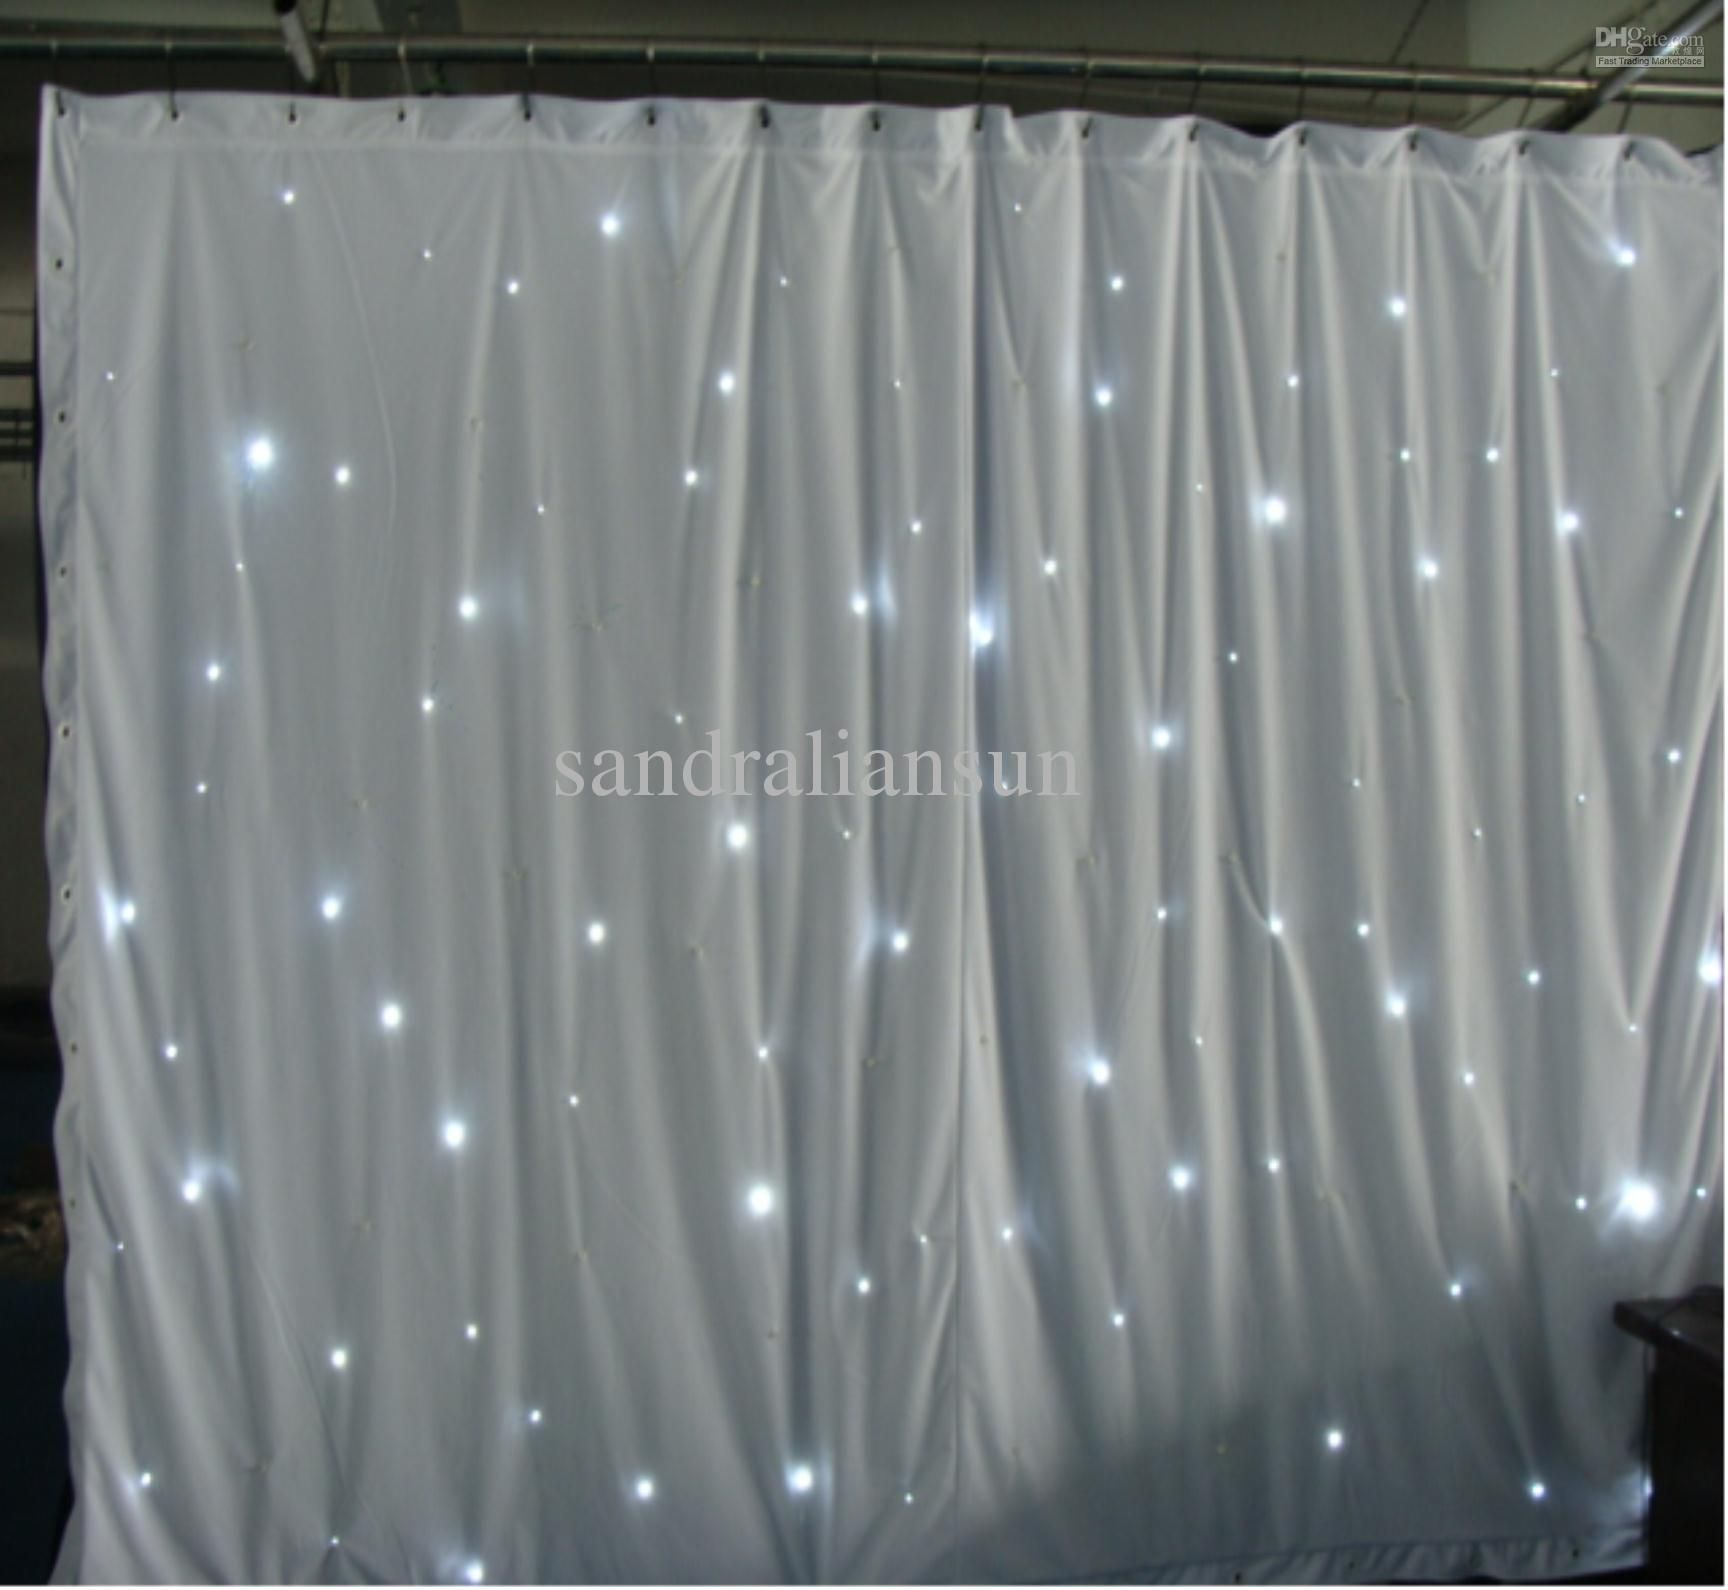 Lights Behind Sheer Curtains Wholesale Top Quality 8x3m